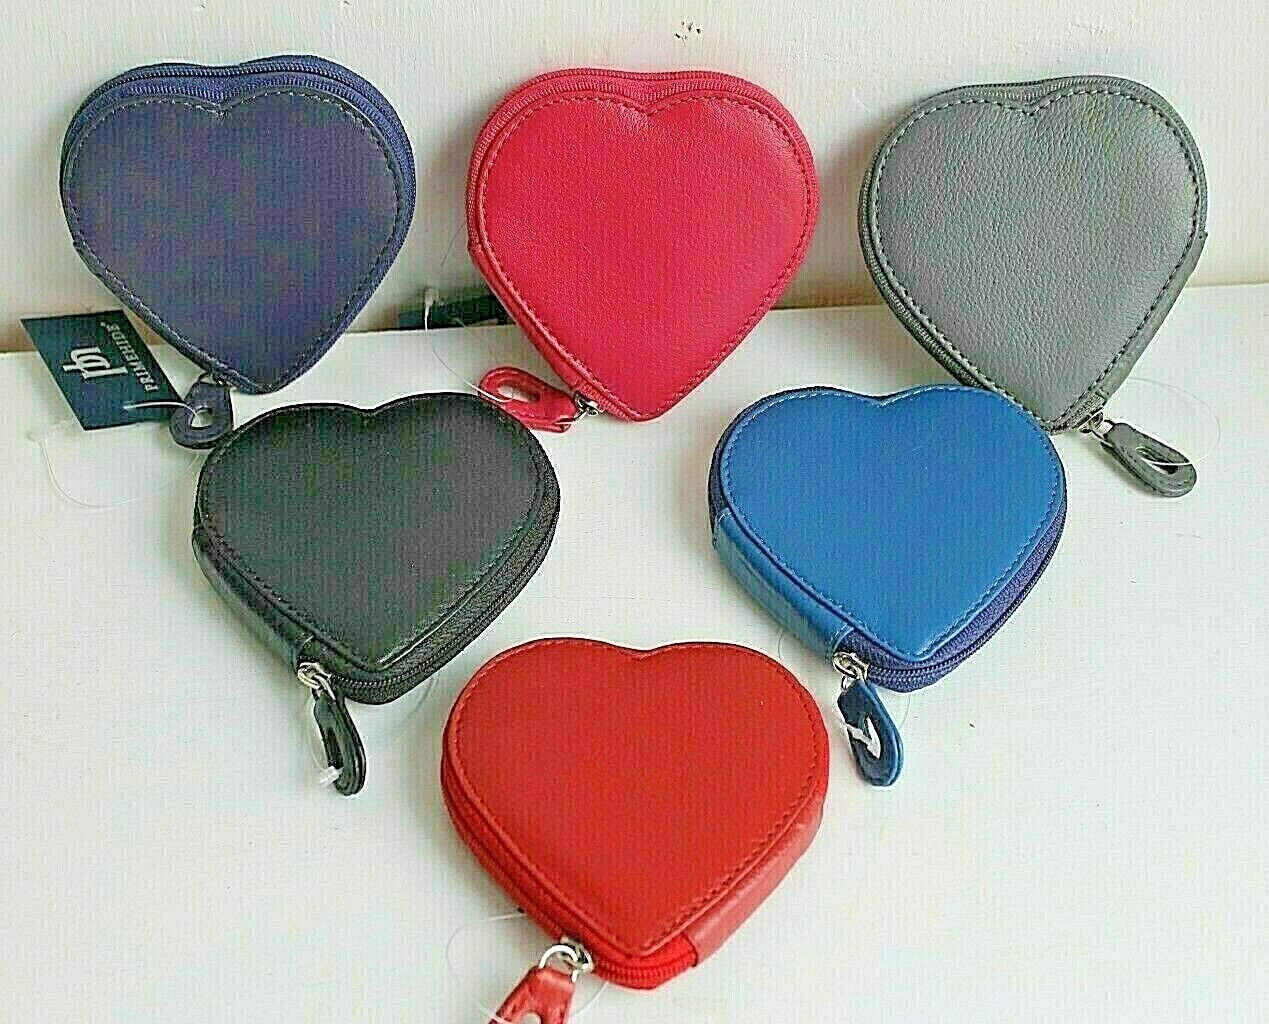 Leather Zip Around Heart Shaped Coin Purse by Prime Hide